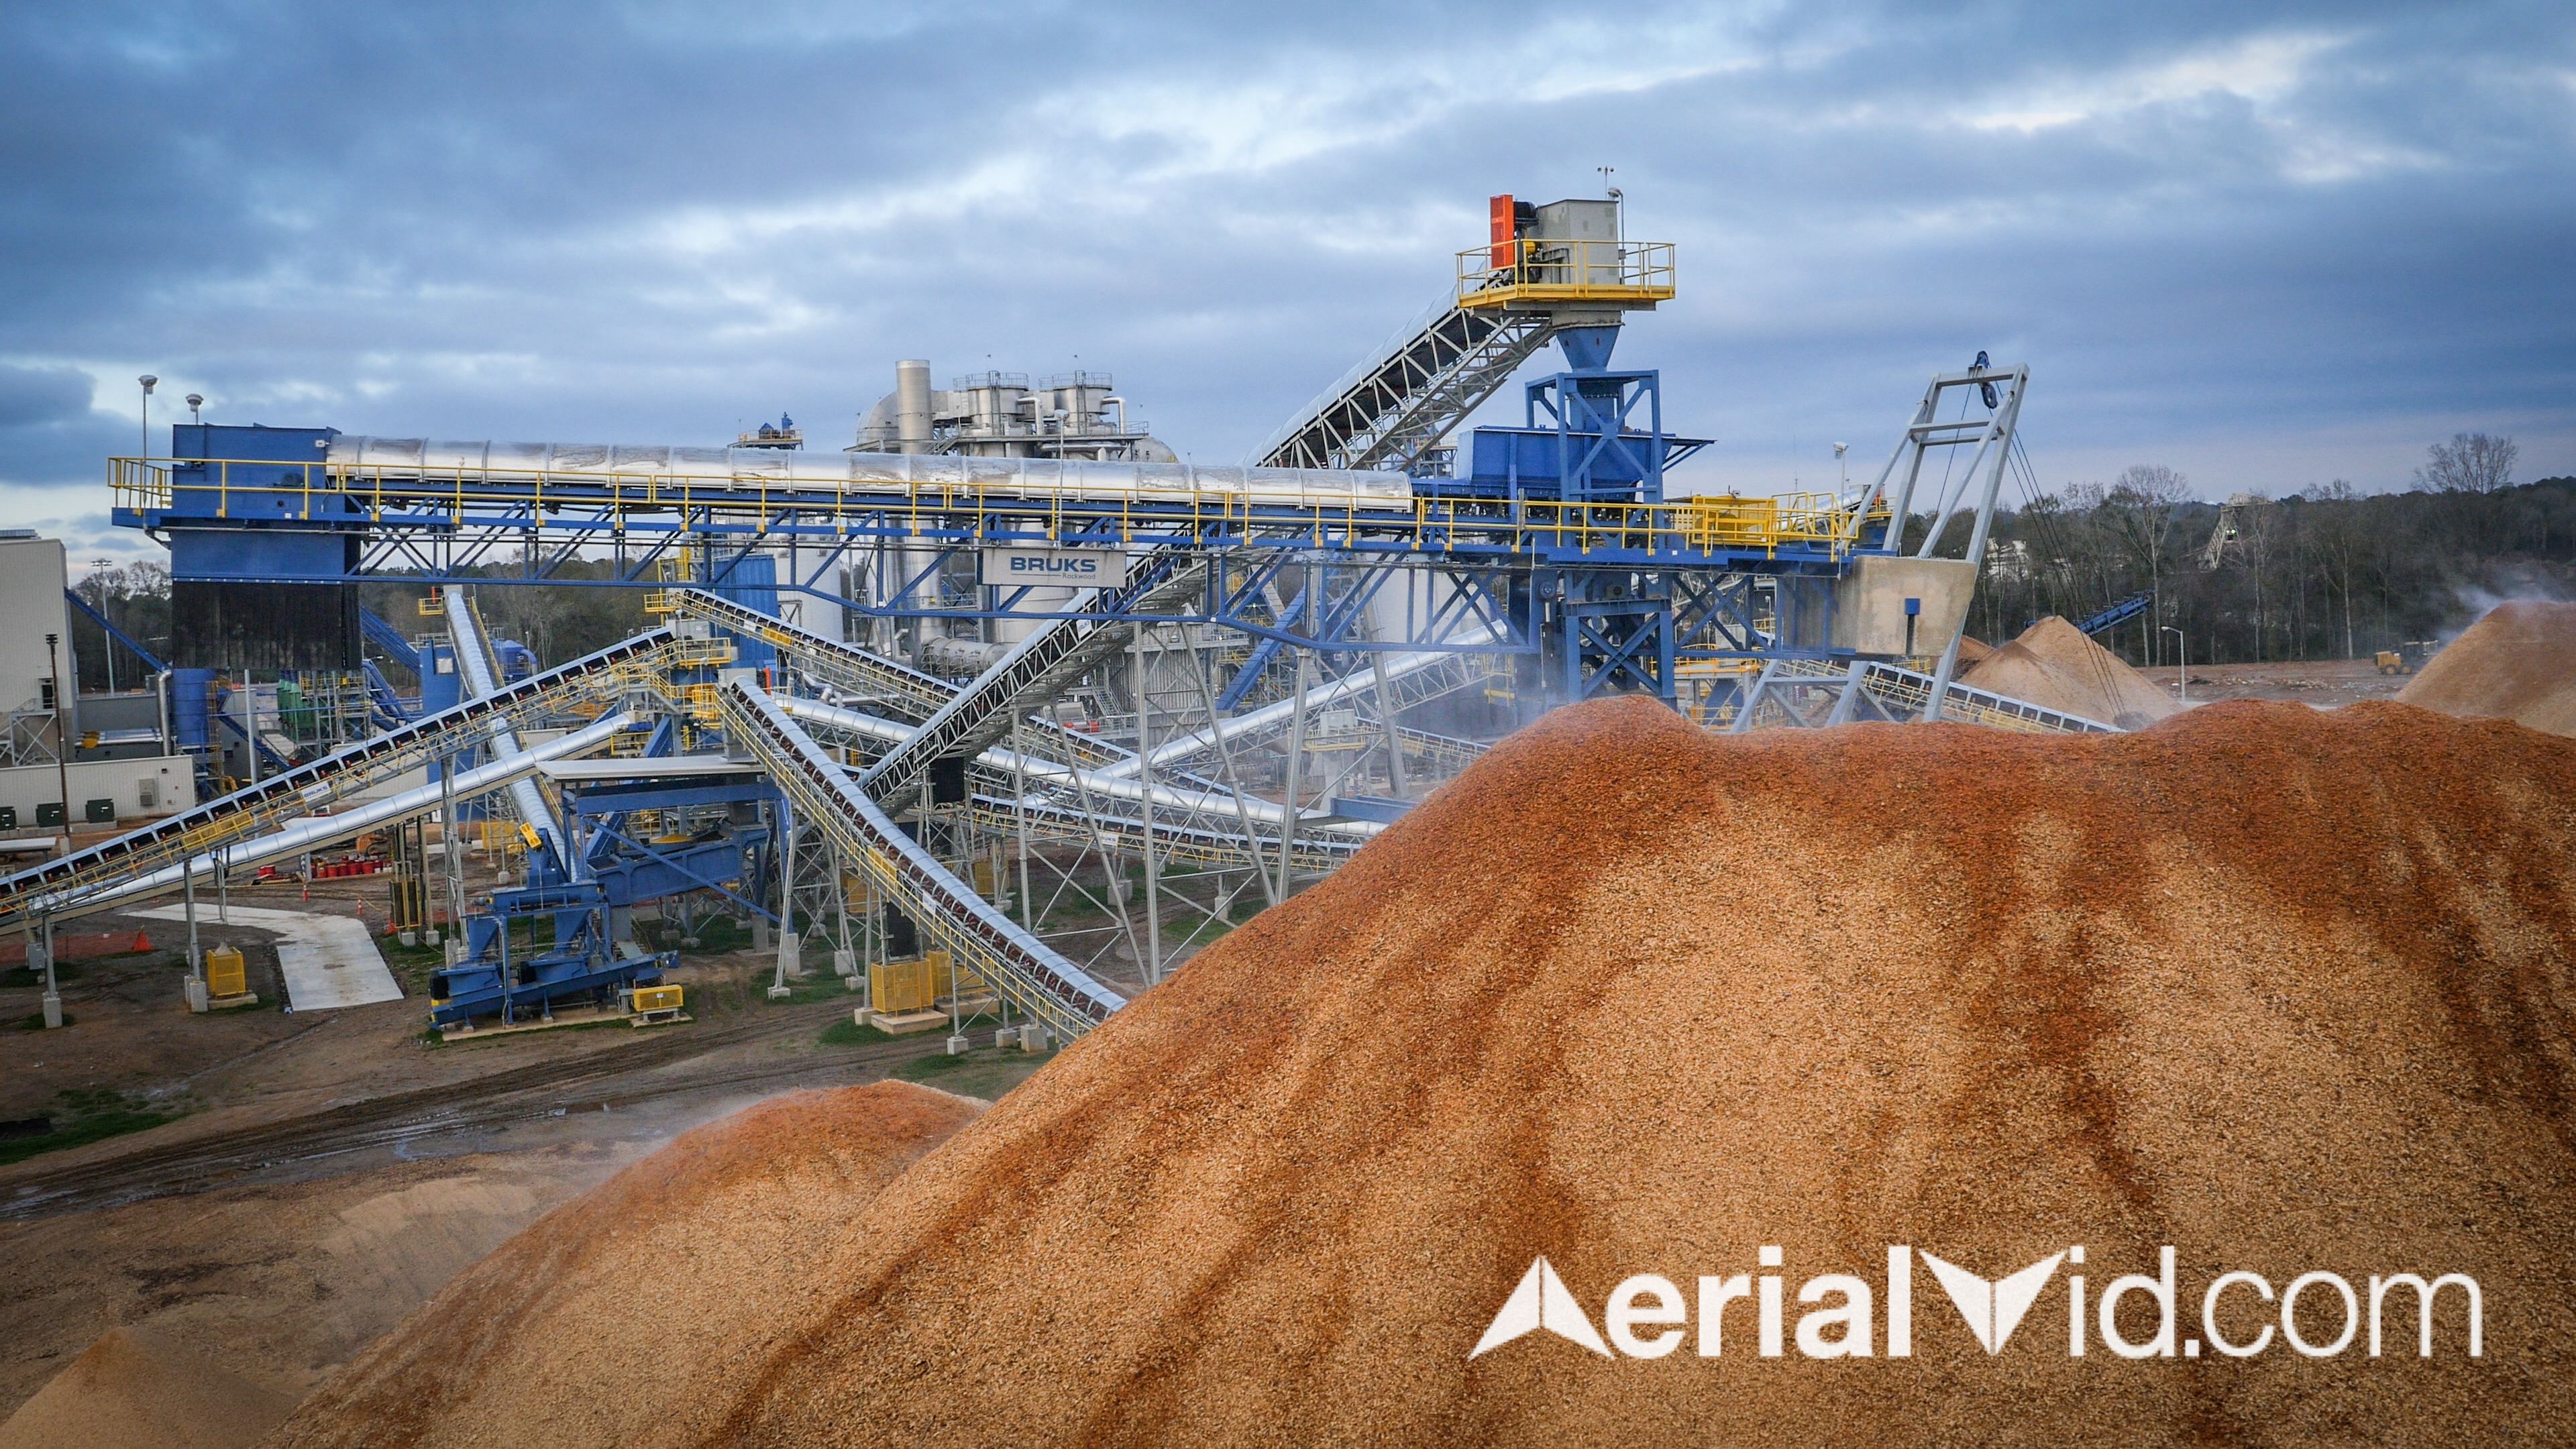 wood-pellets-chips-industrial-photography